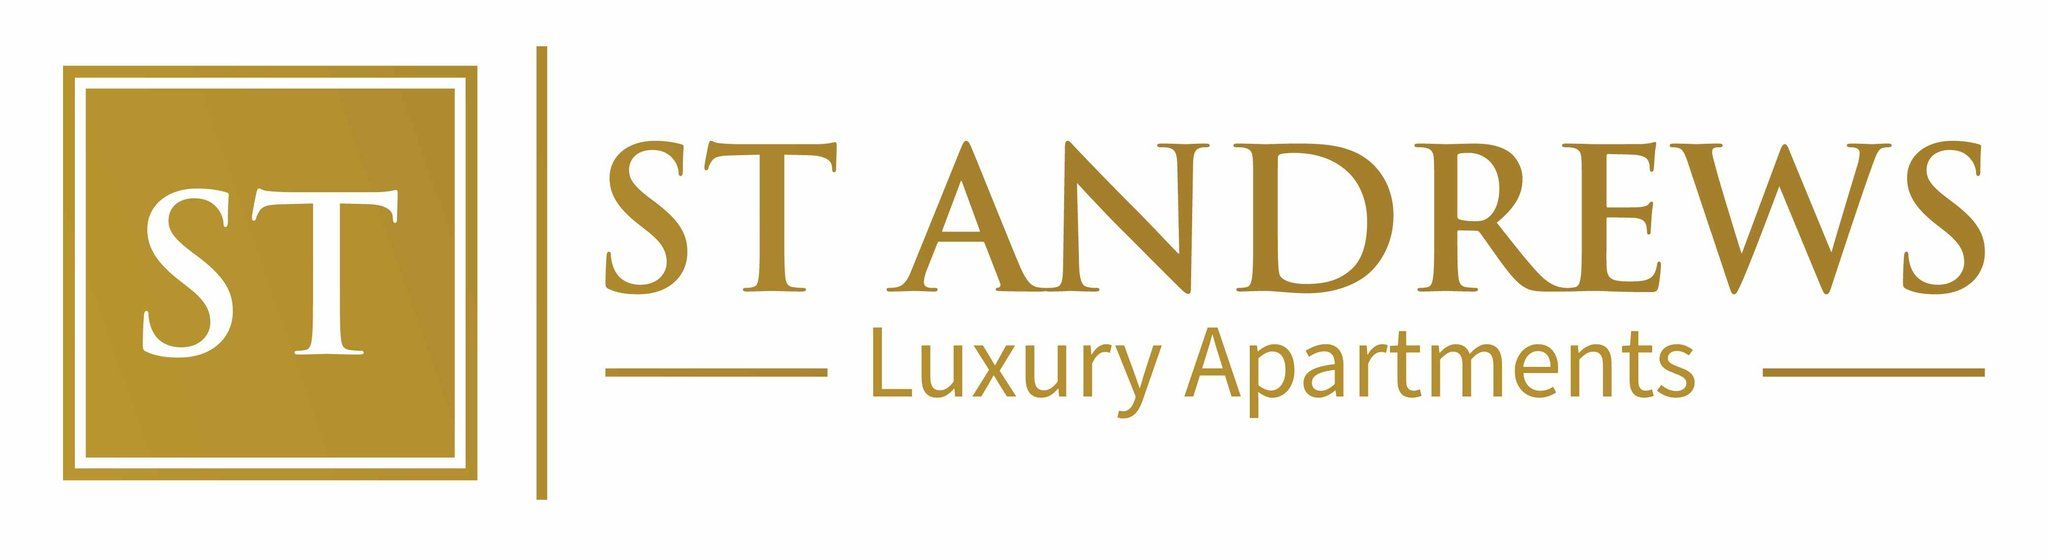 St Andrews Luxury Apartments